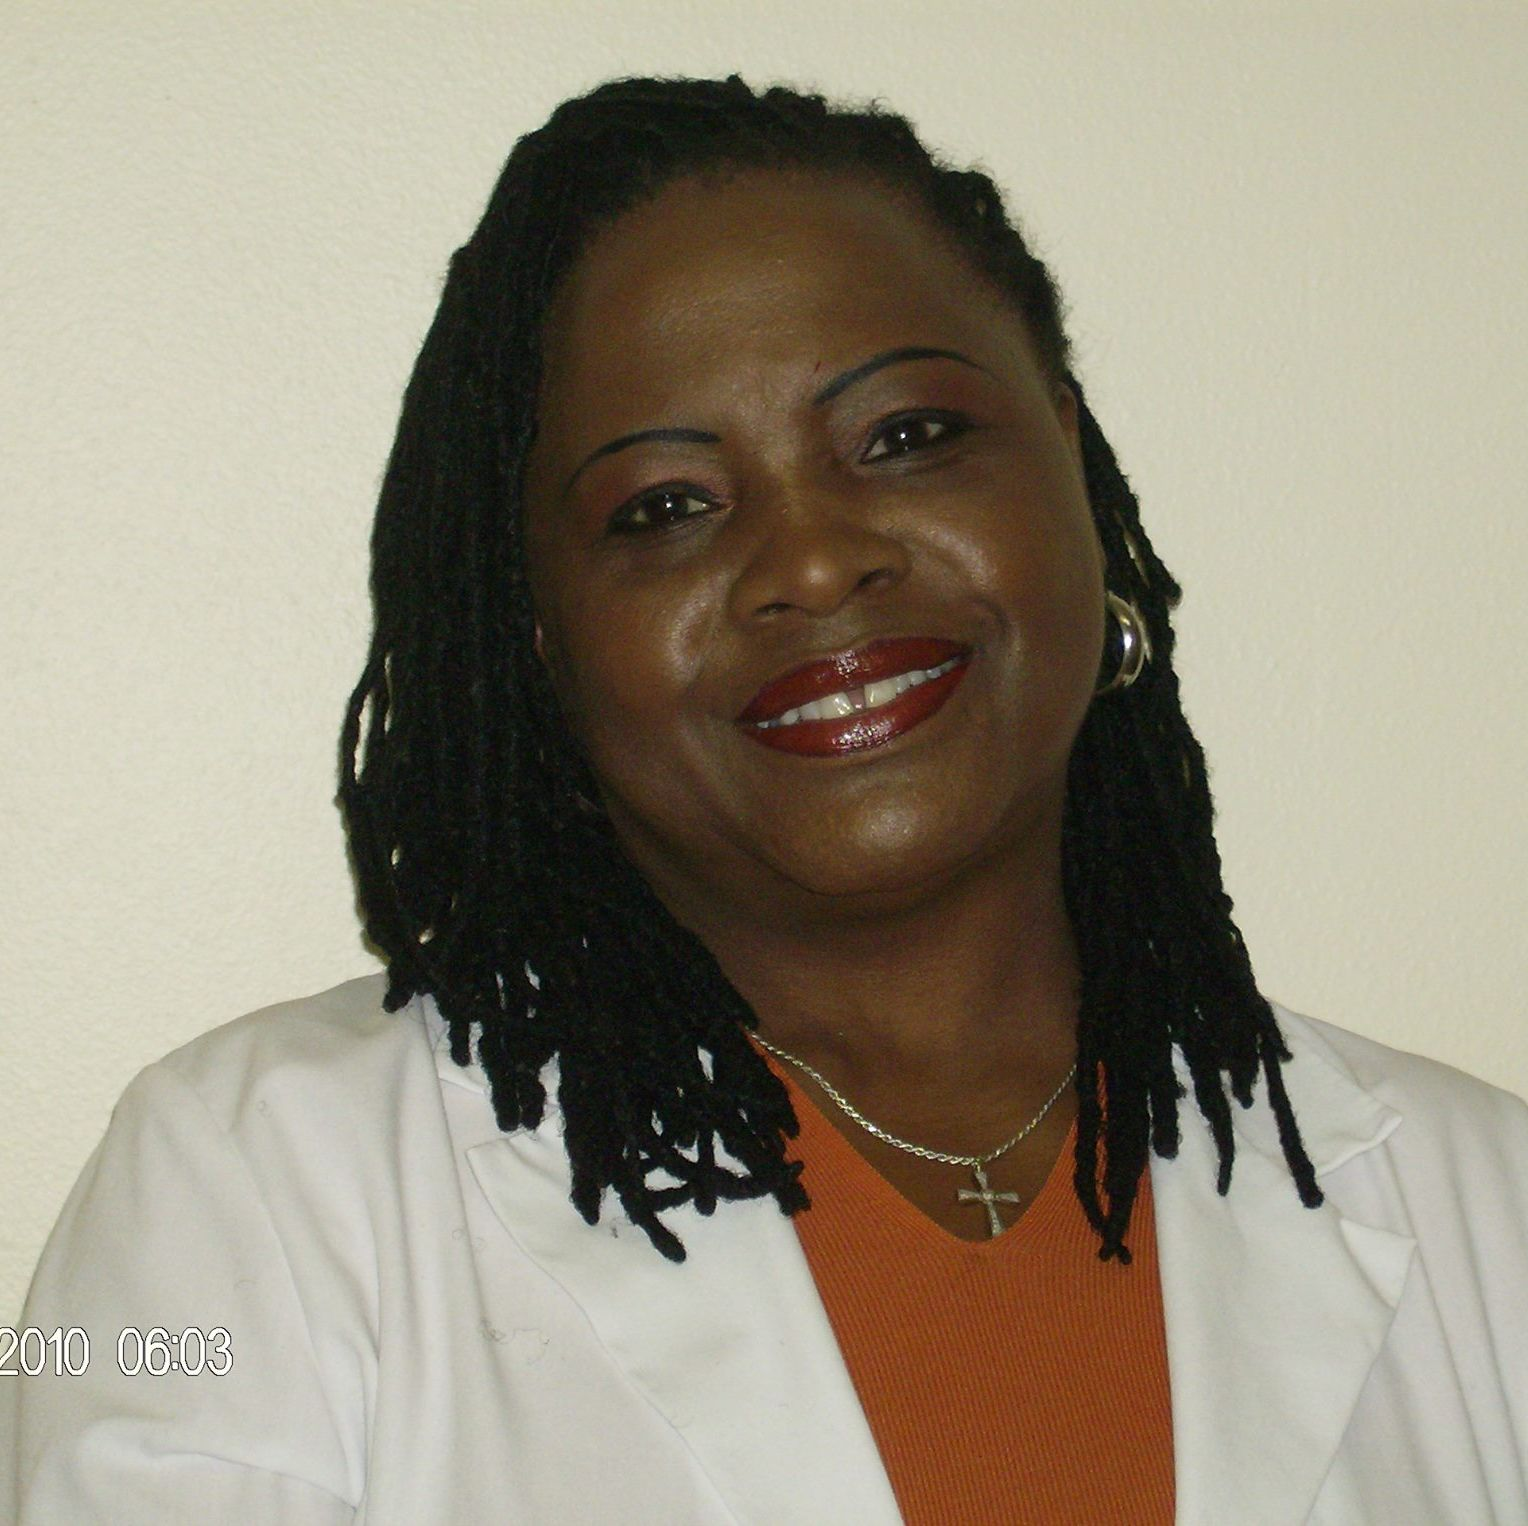 Rosemarie Allen, Physiatrist (Physical Medicine)